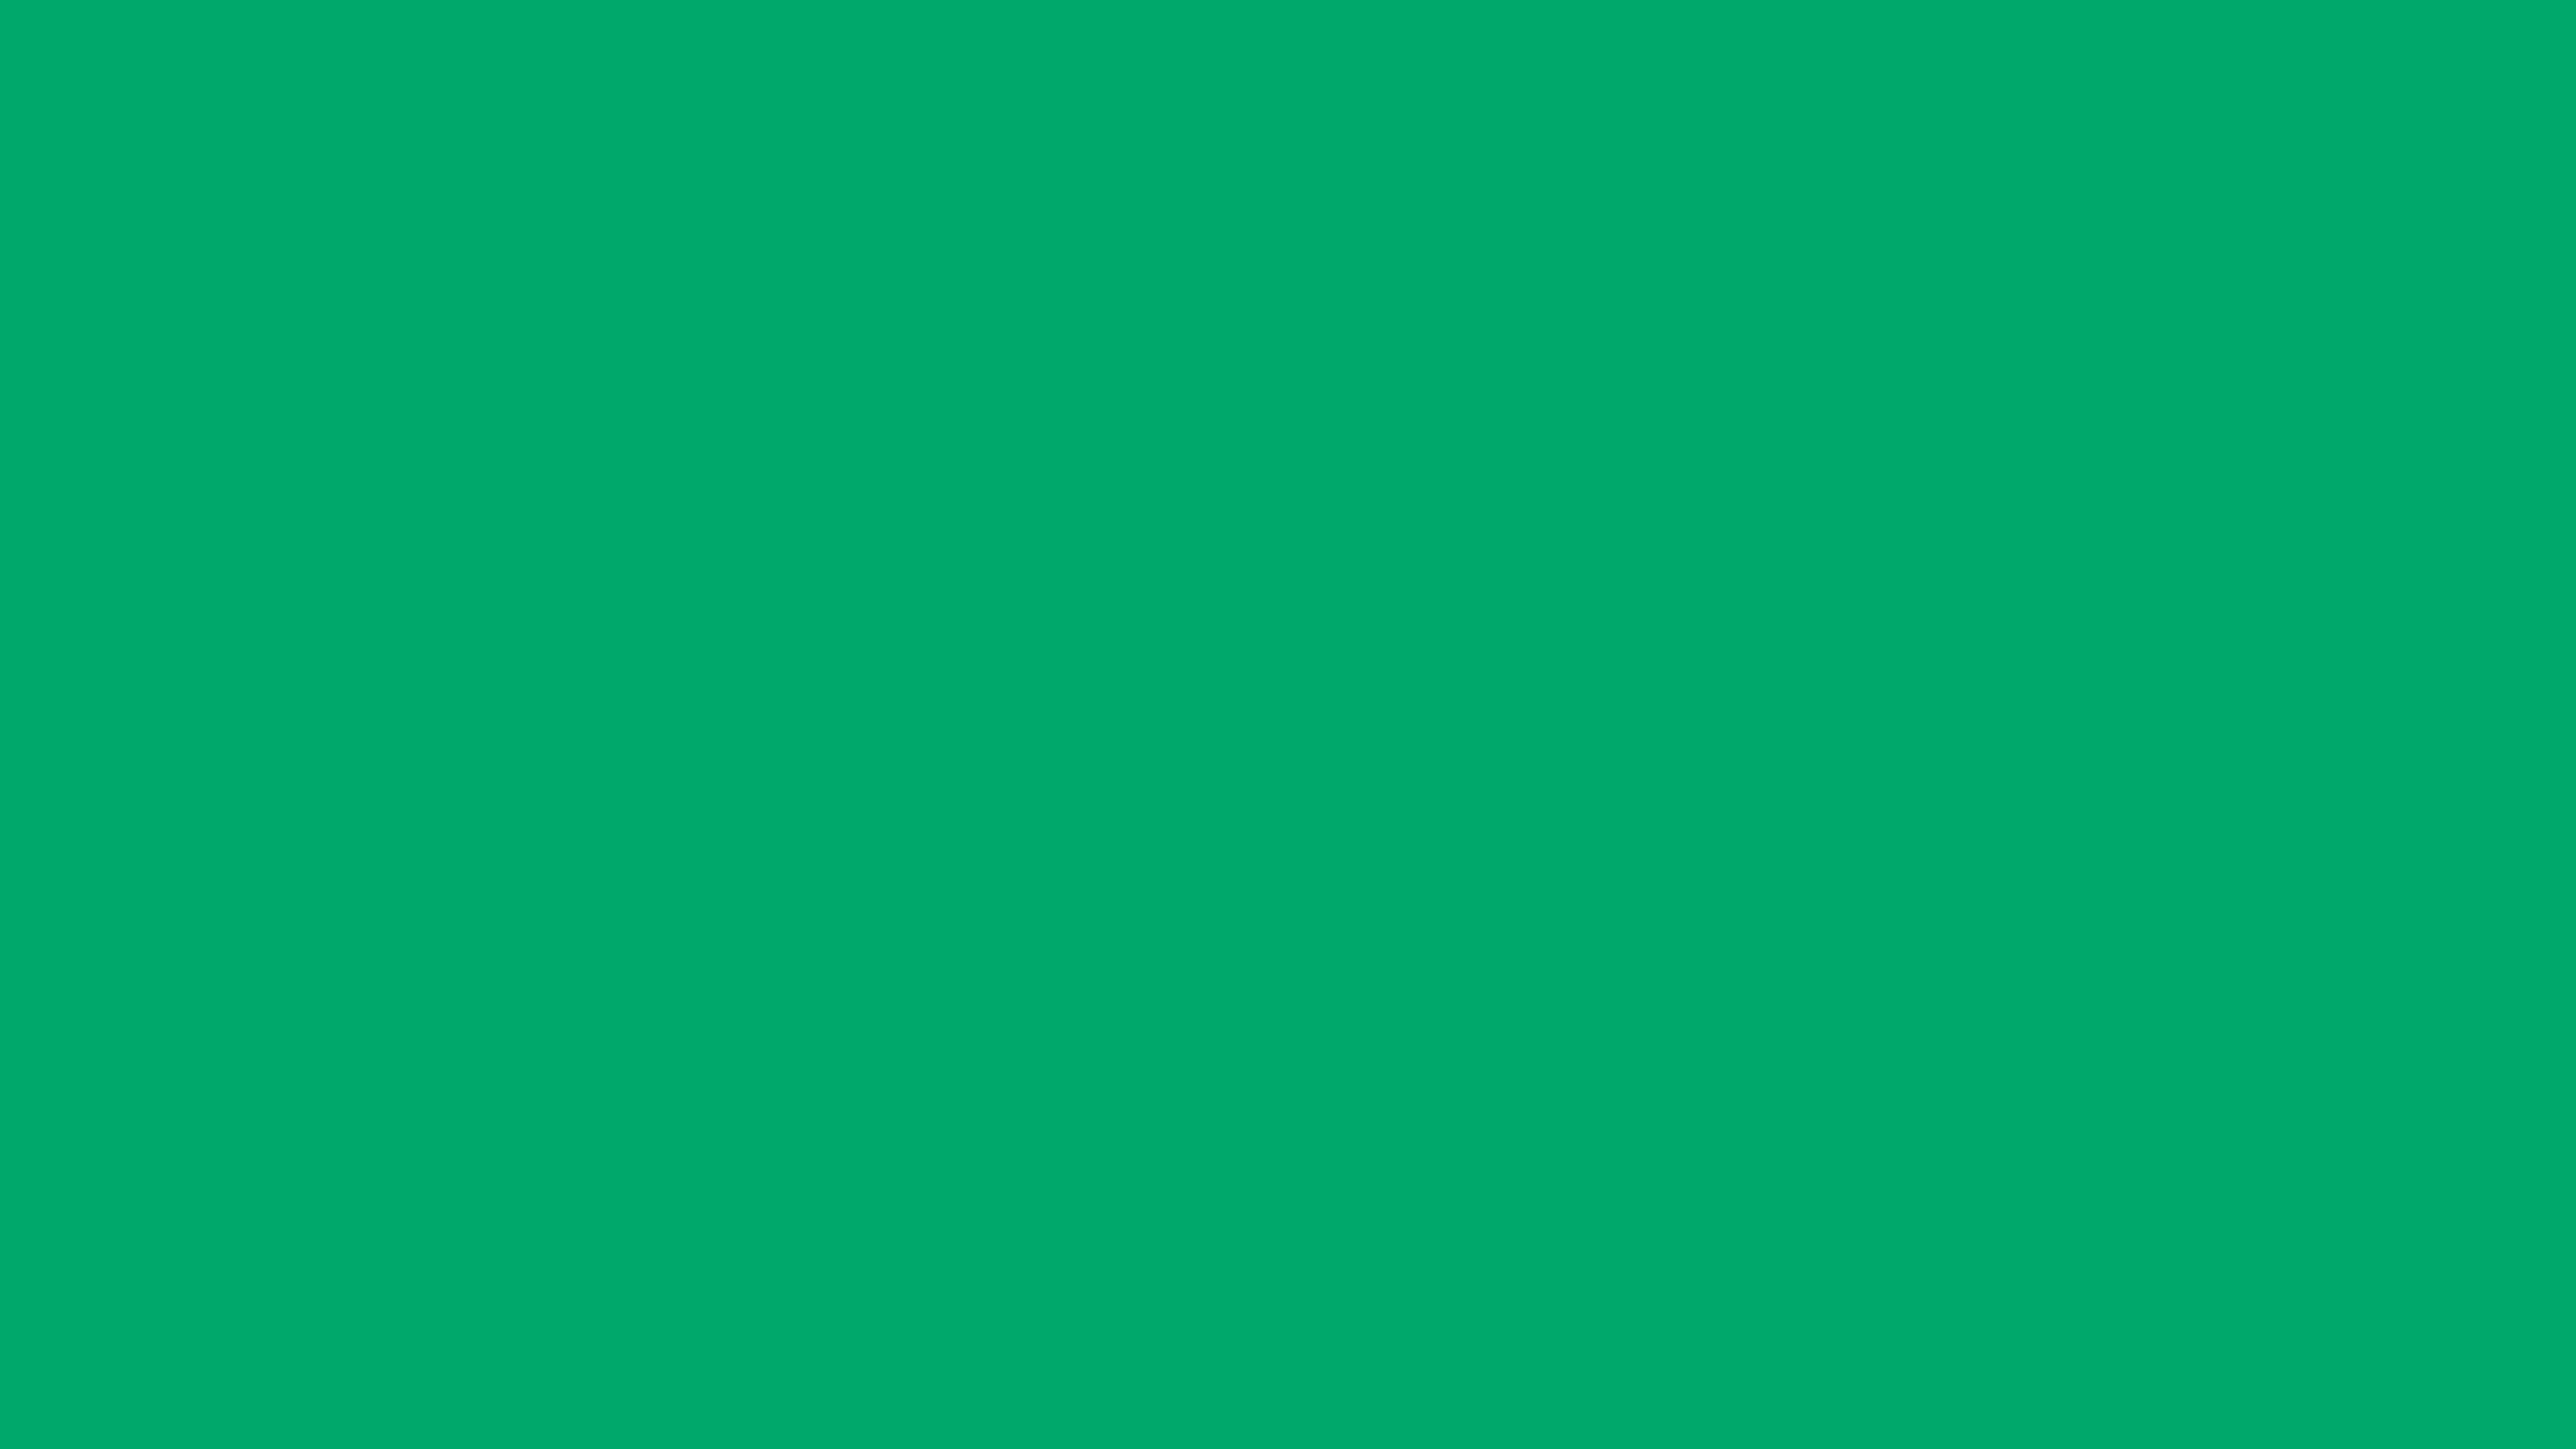 5120x2880 Jade Solid Color Background